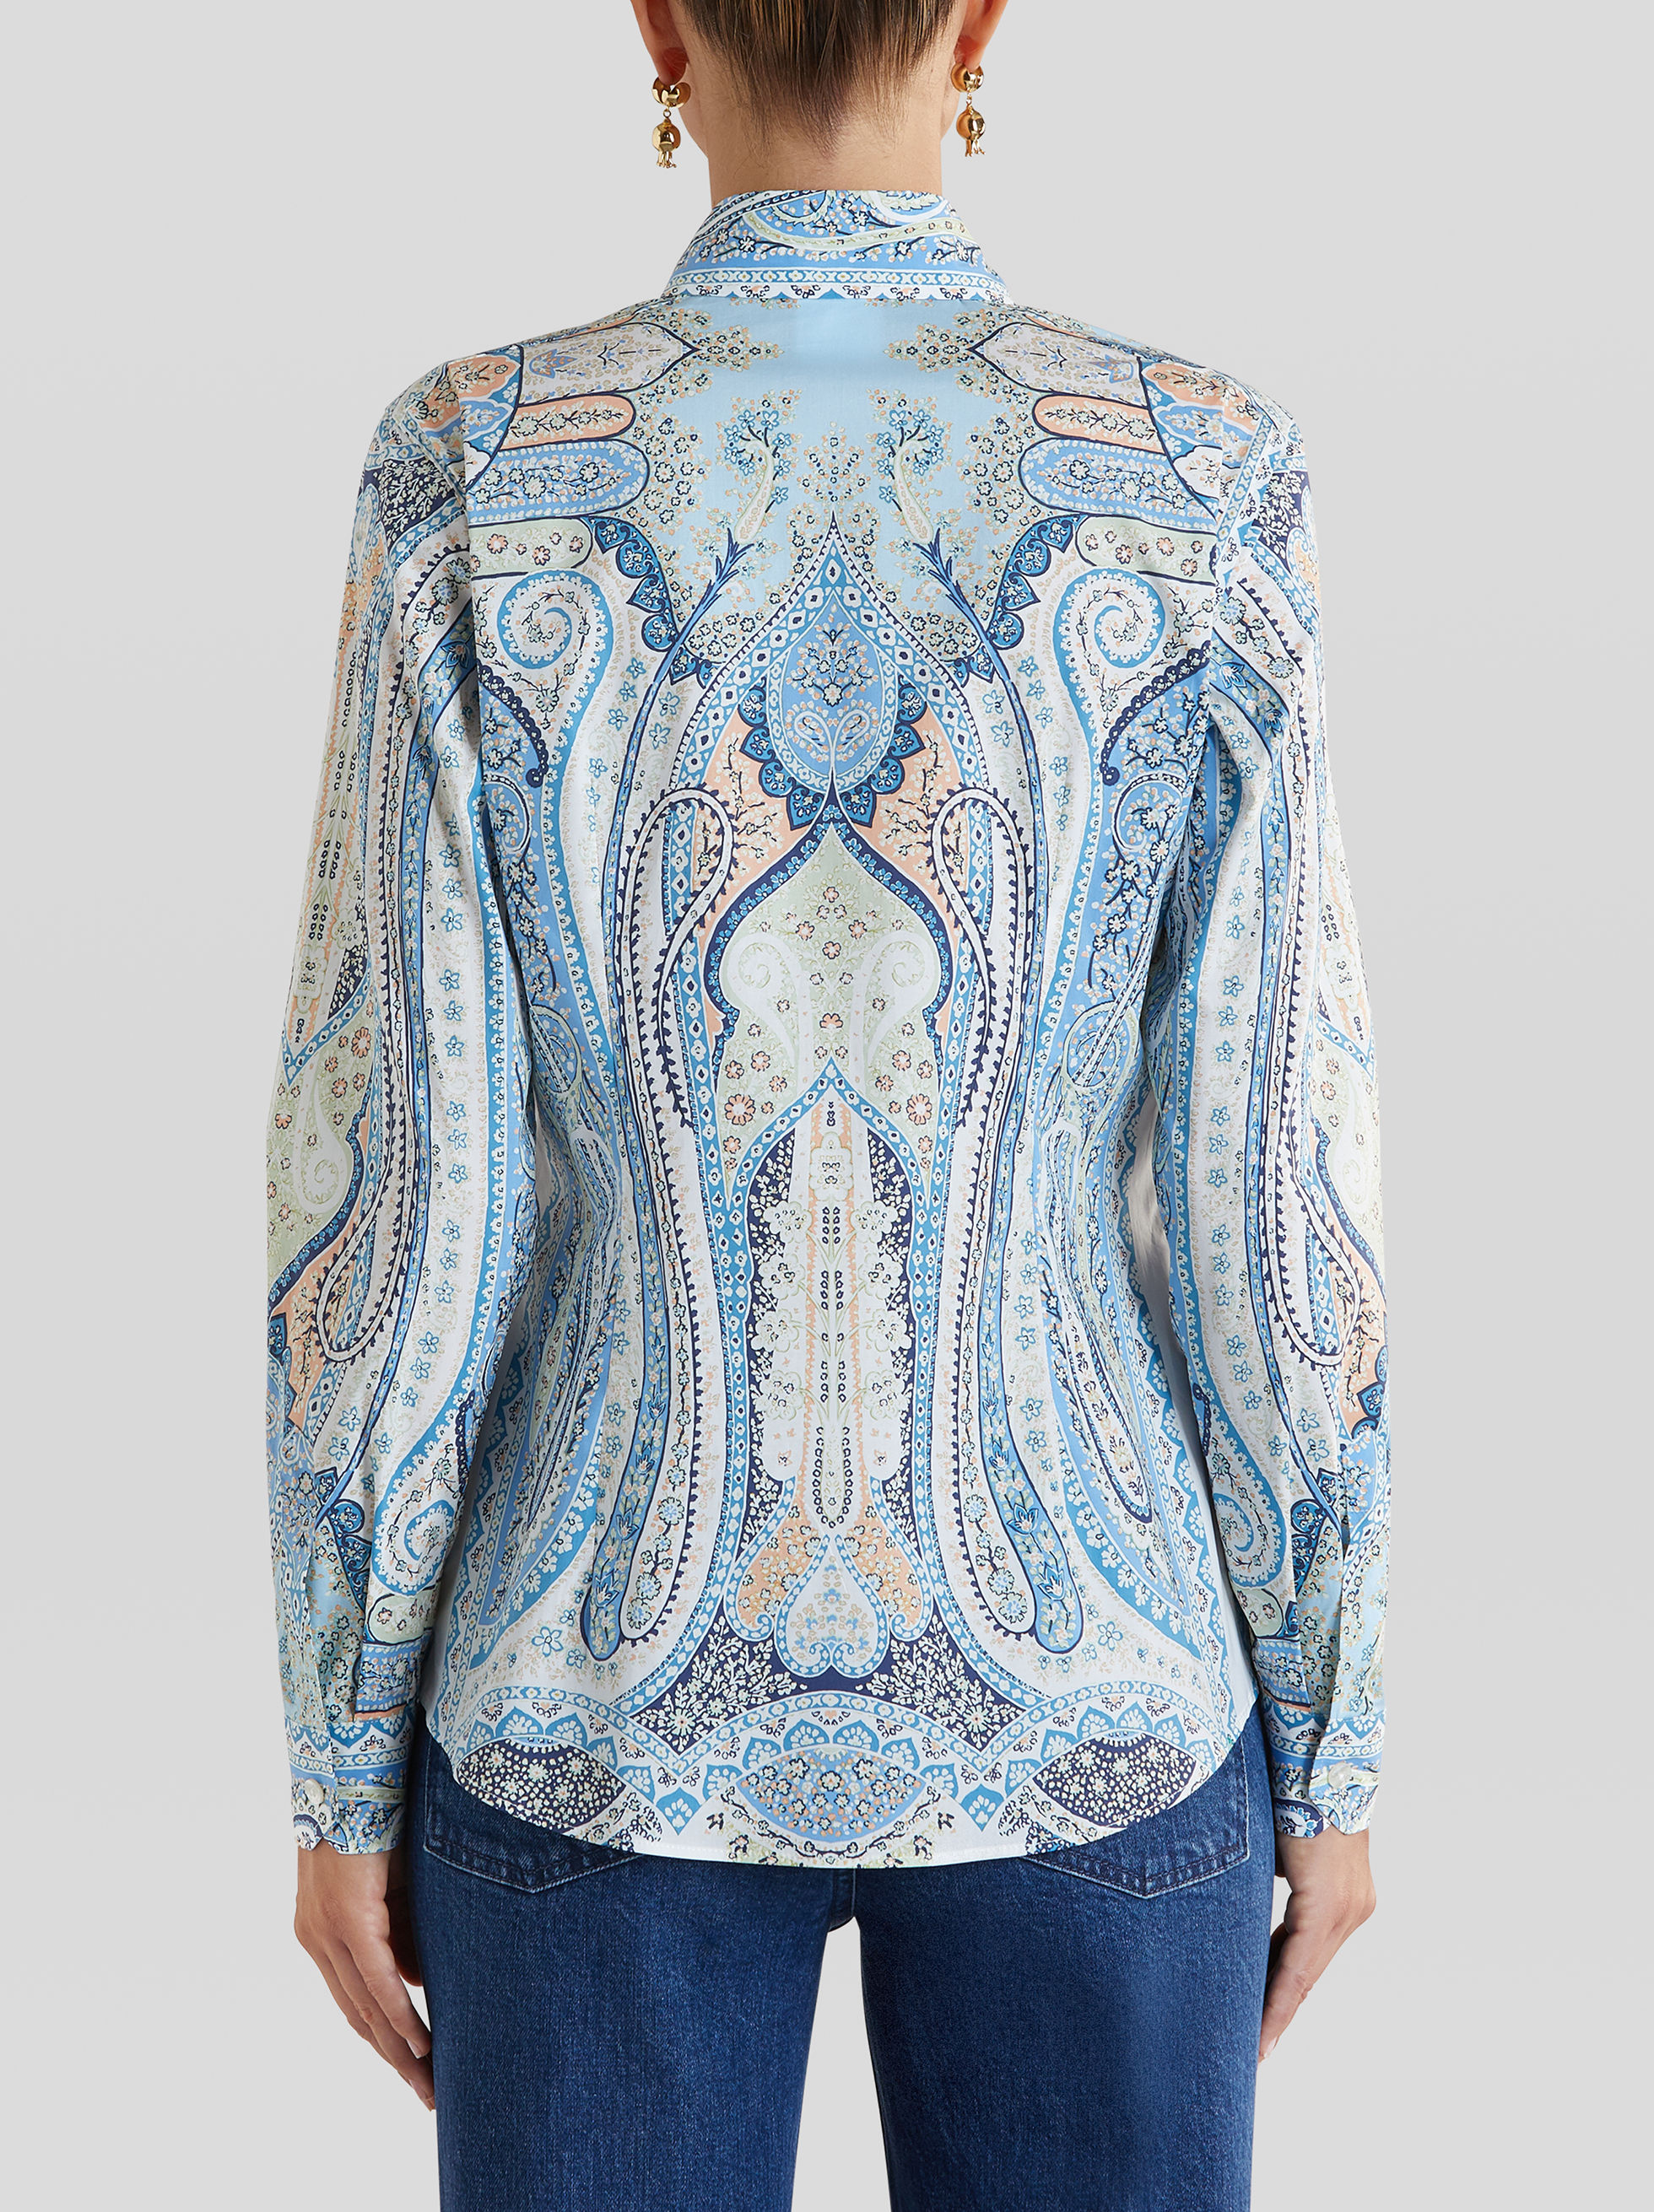 PRINTED PAISLEY PATTERN SHIRT